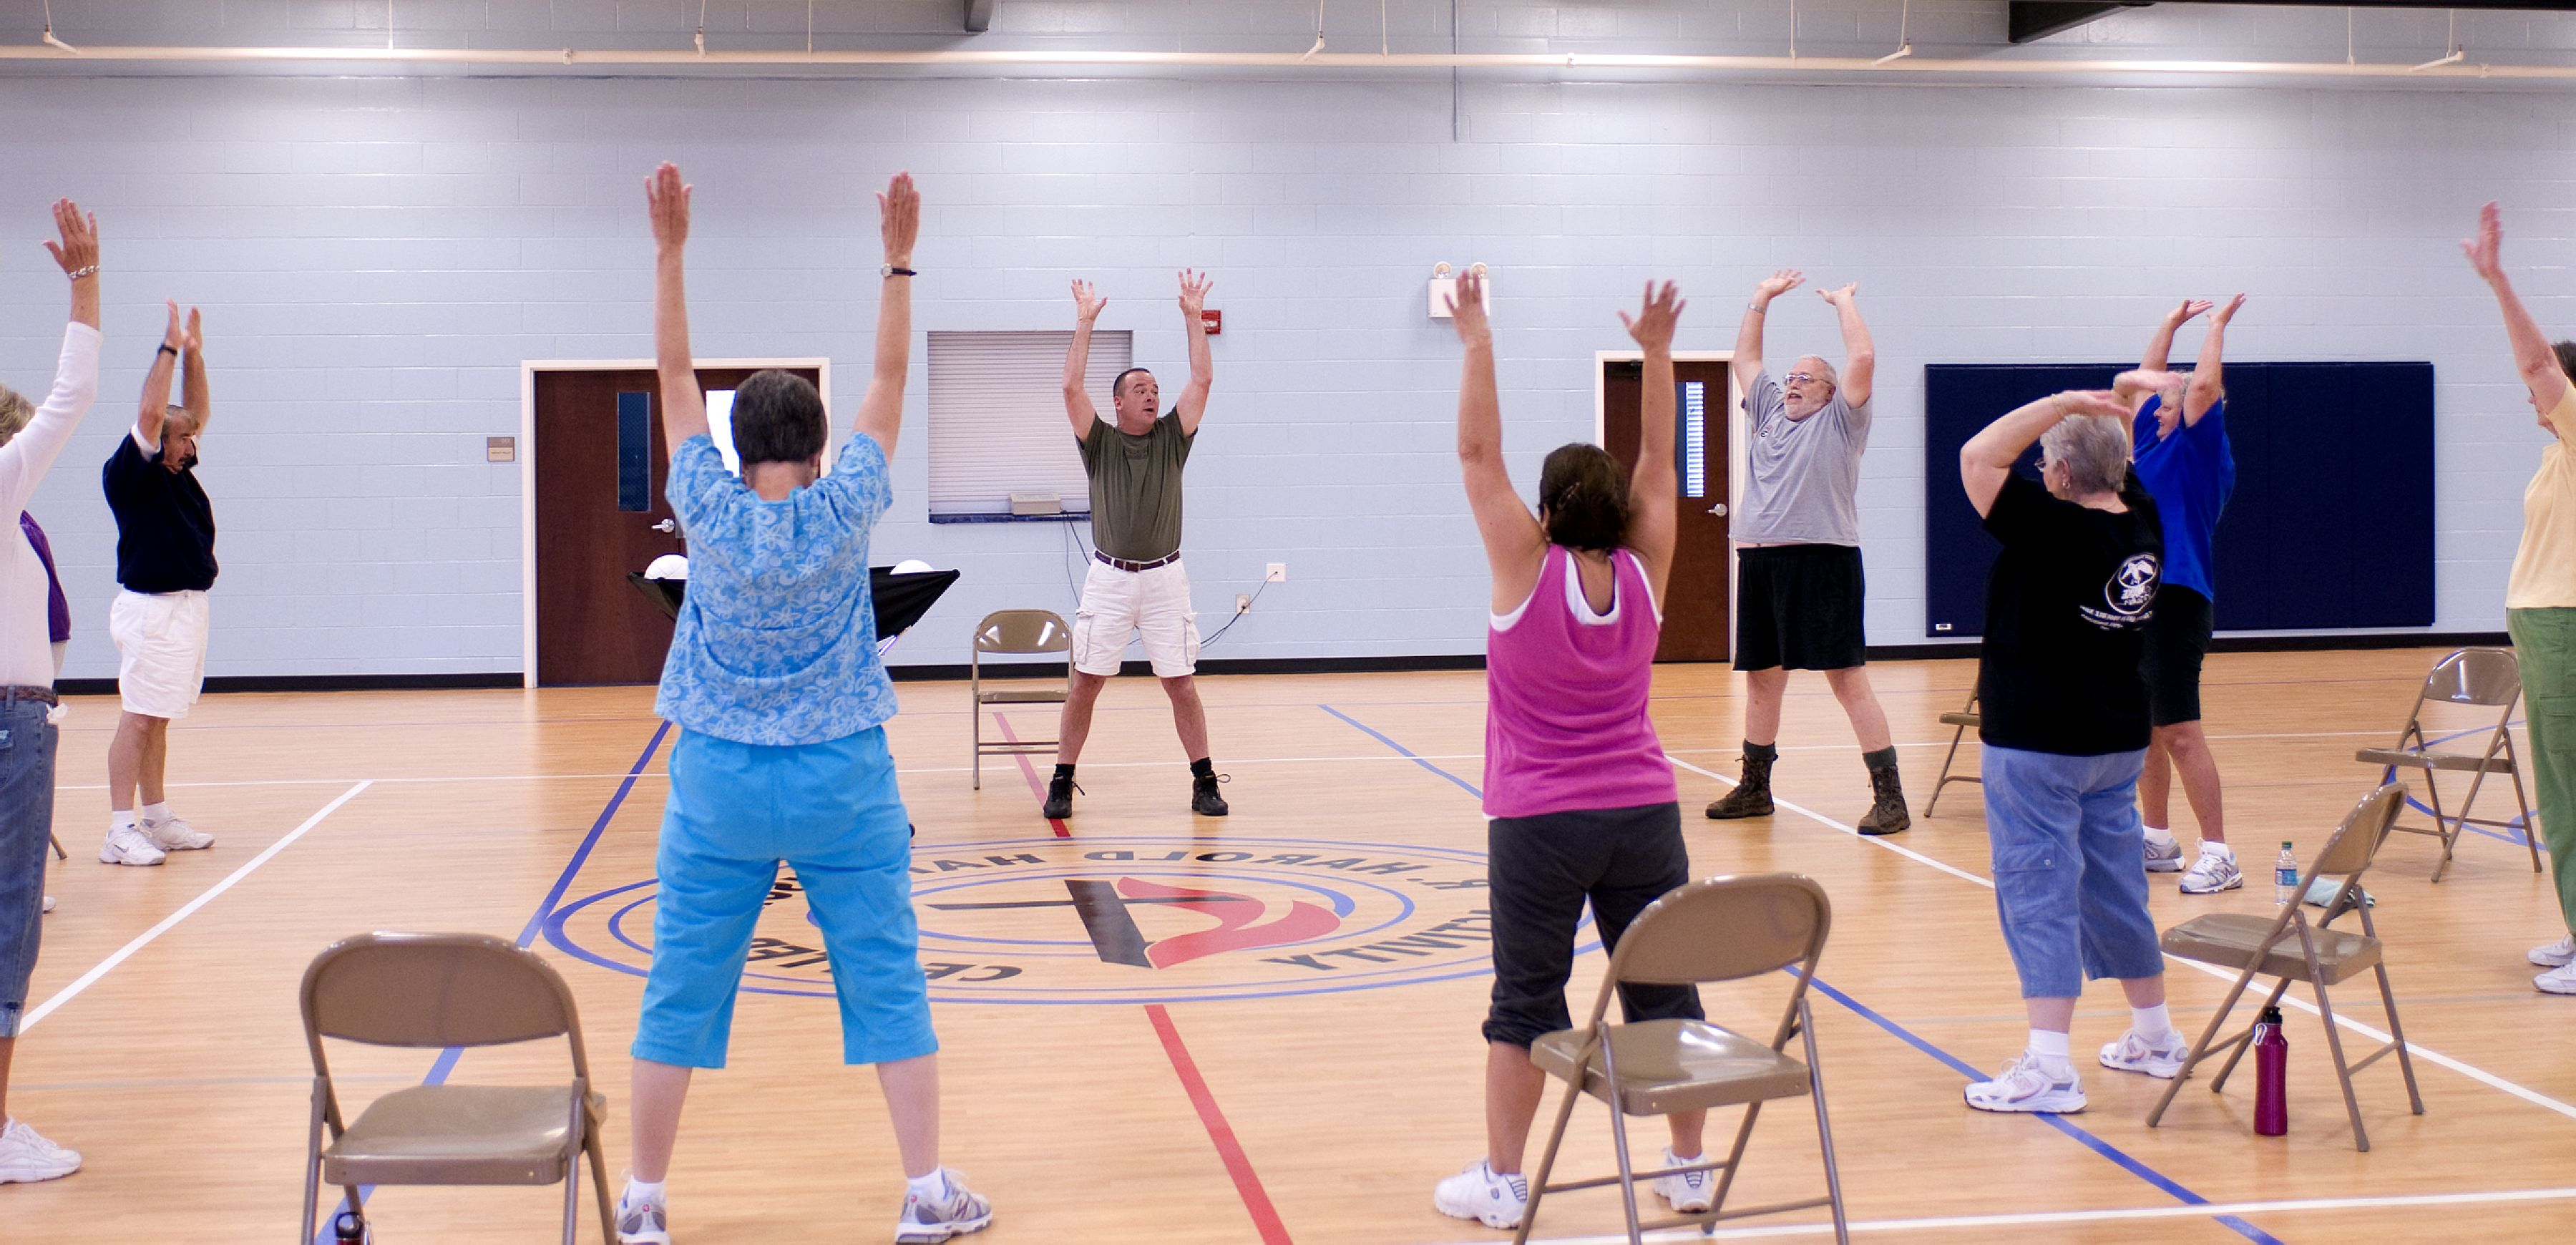 Free picture: exercise, class, stretching